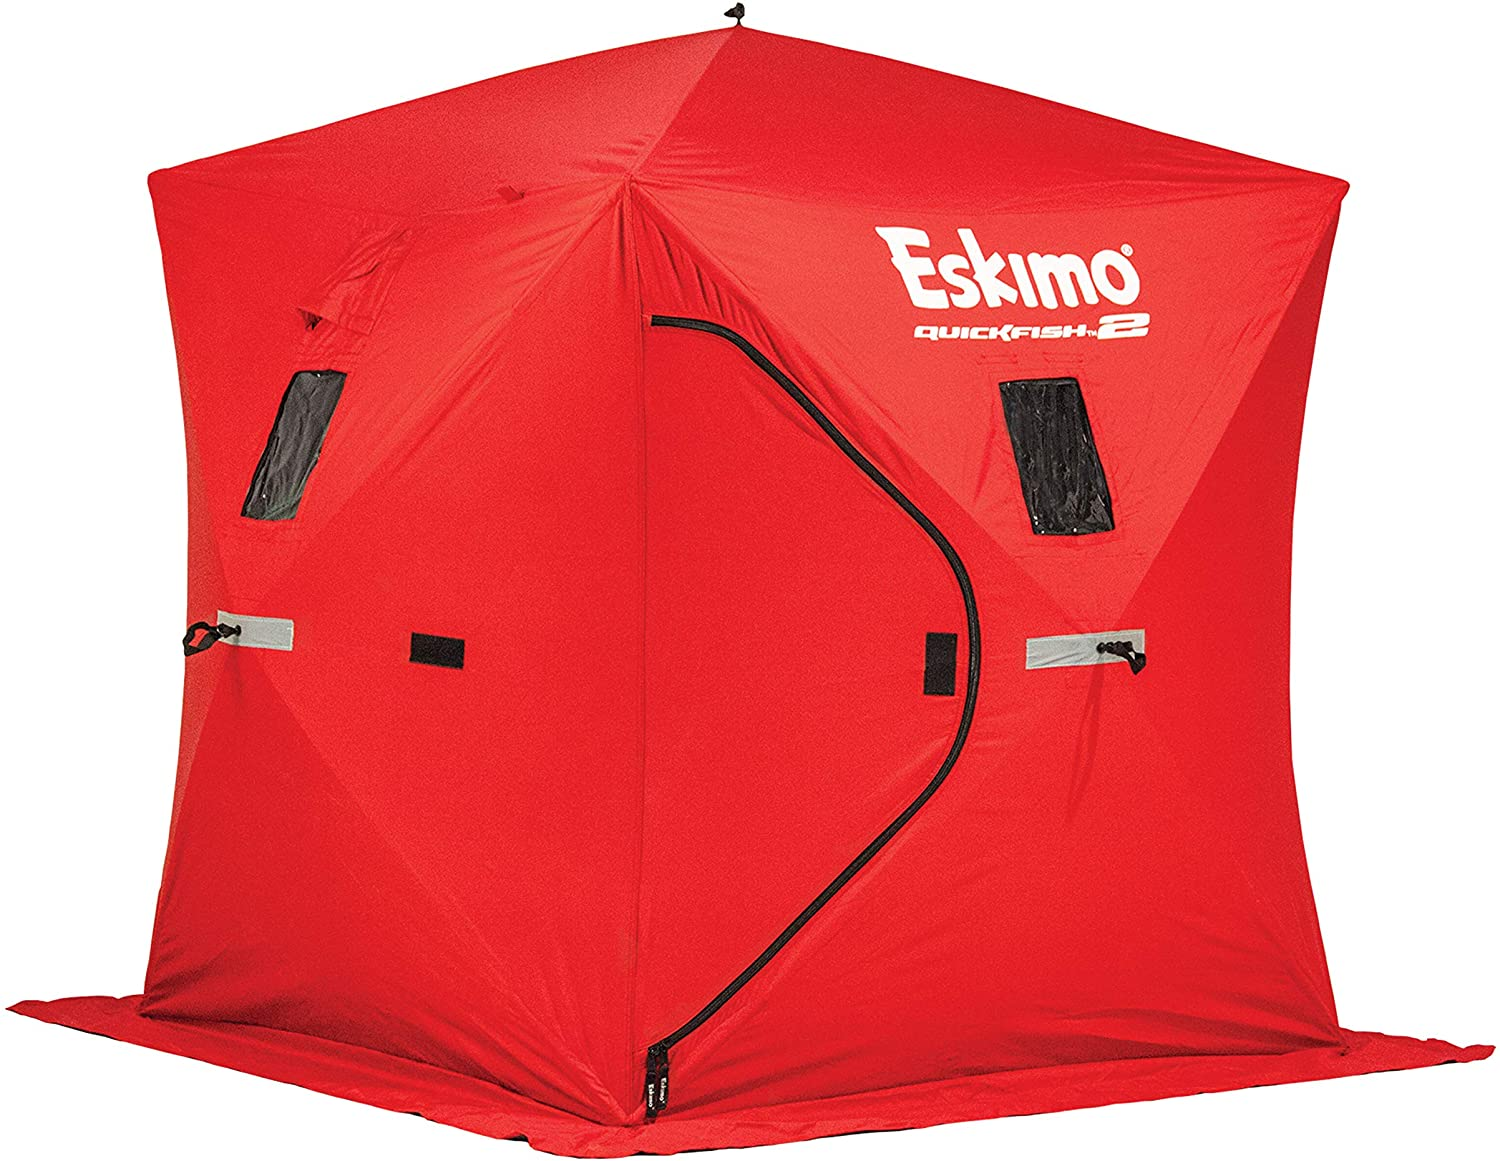 fishing-gifts-tent